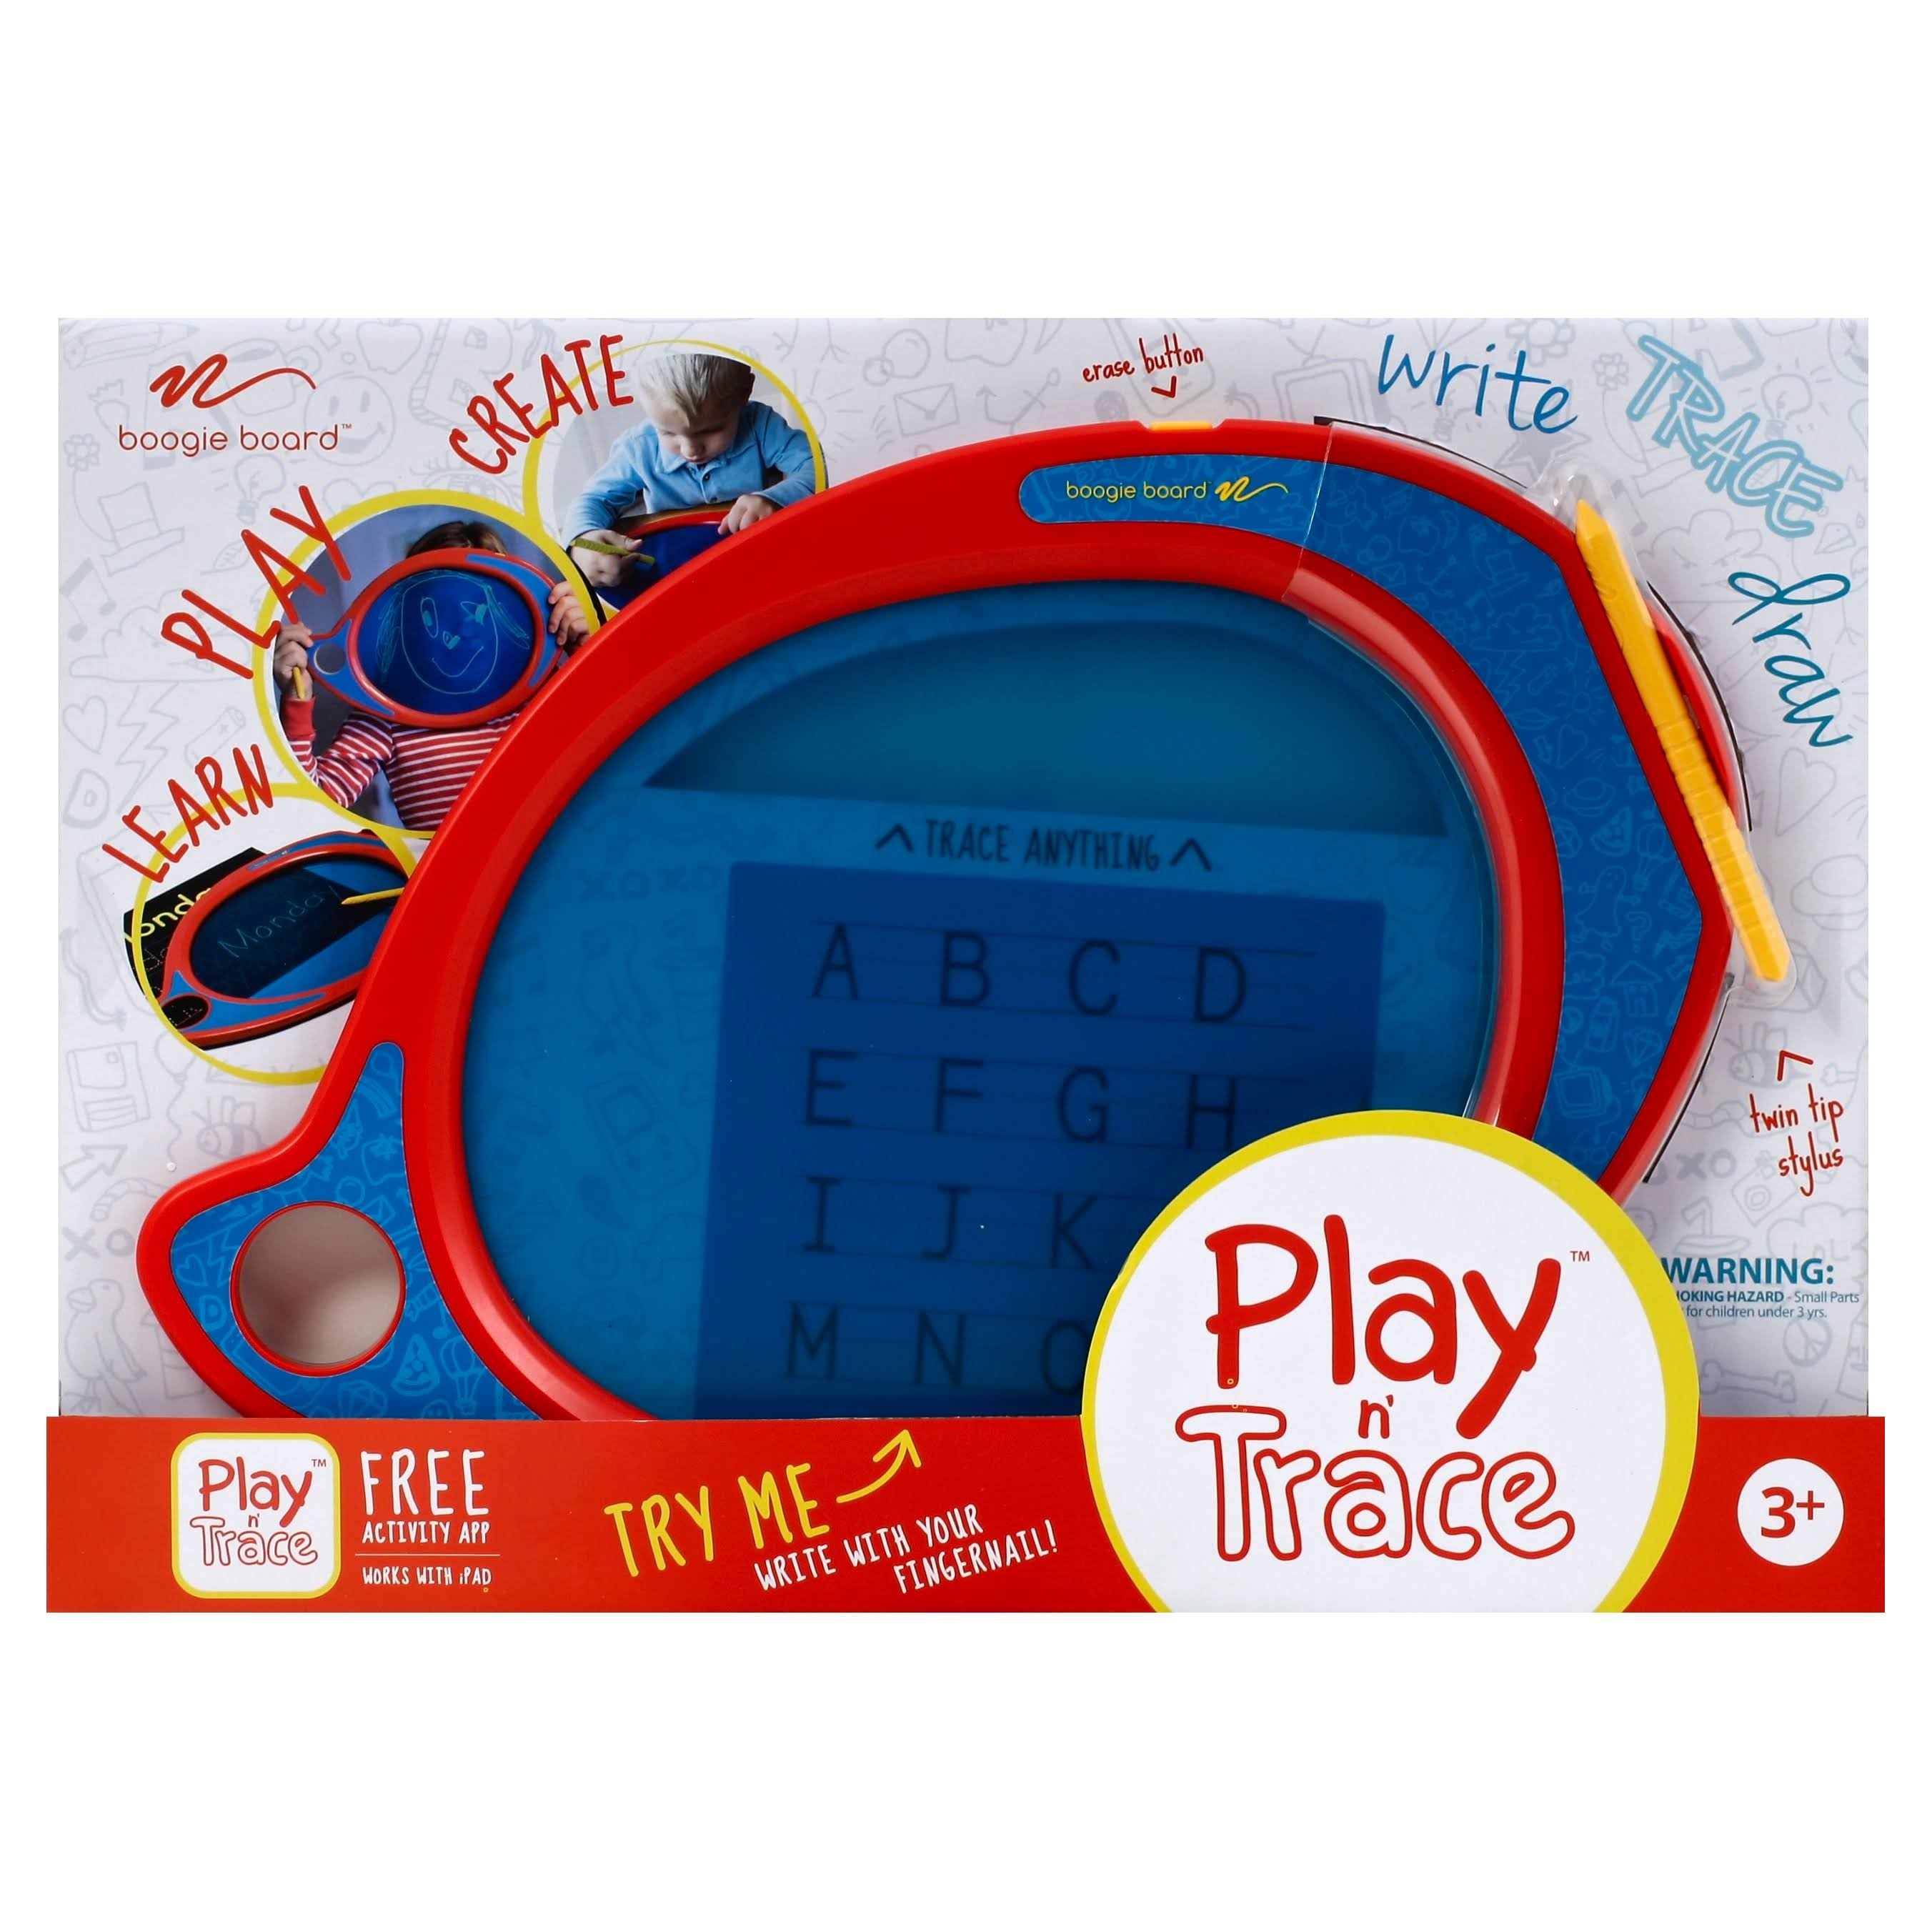 Kent Display Boogie Board Play 'N Trace Lcd Ewriter